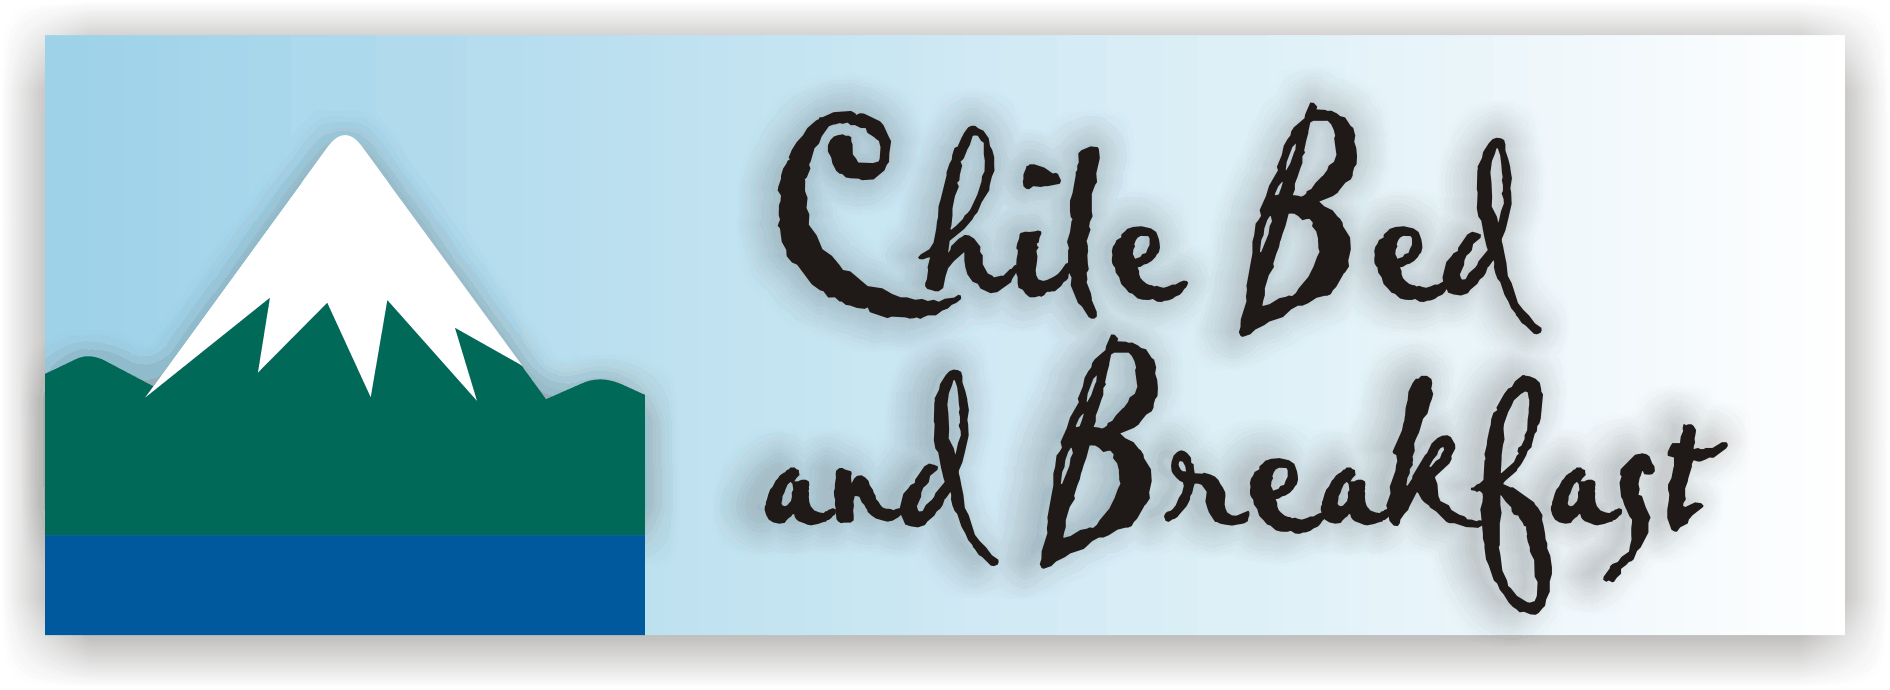 Chile Bed and Breakfast